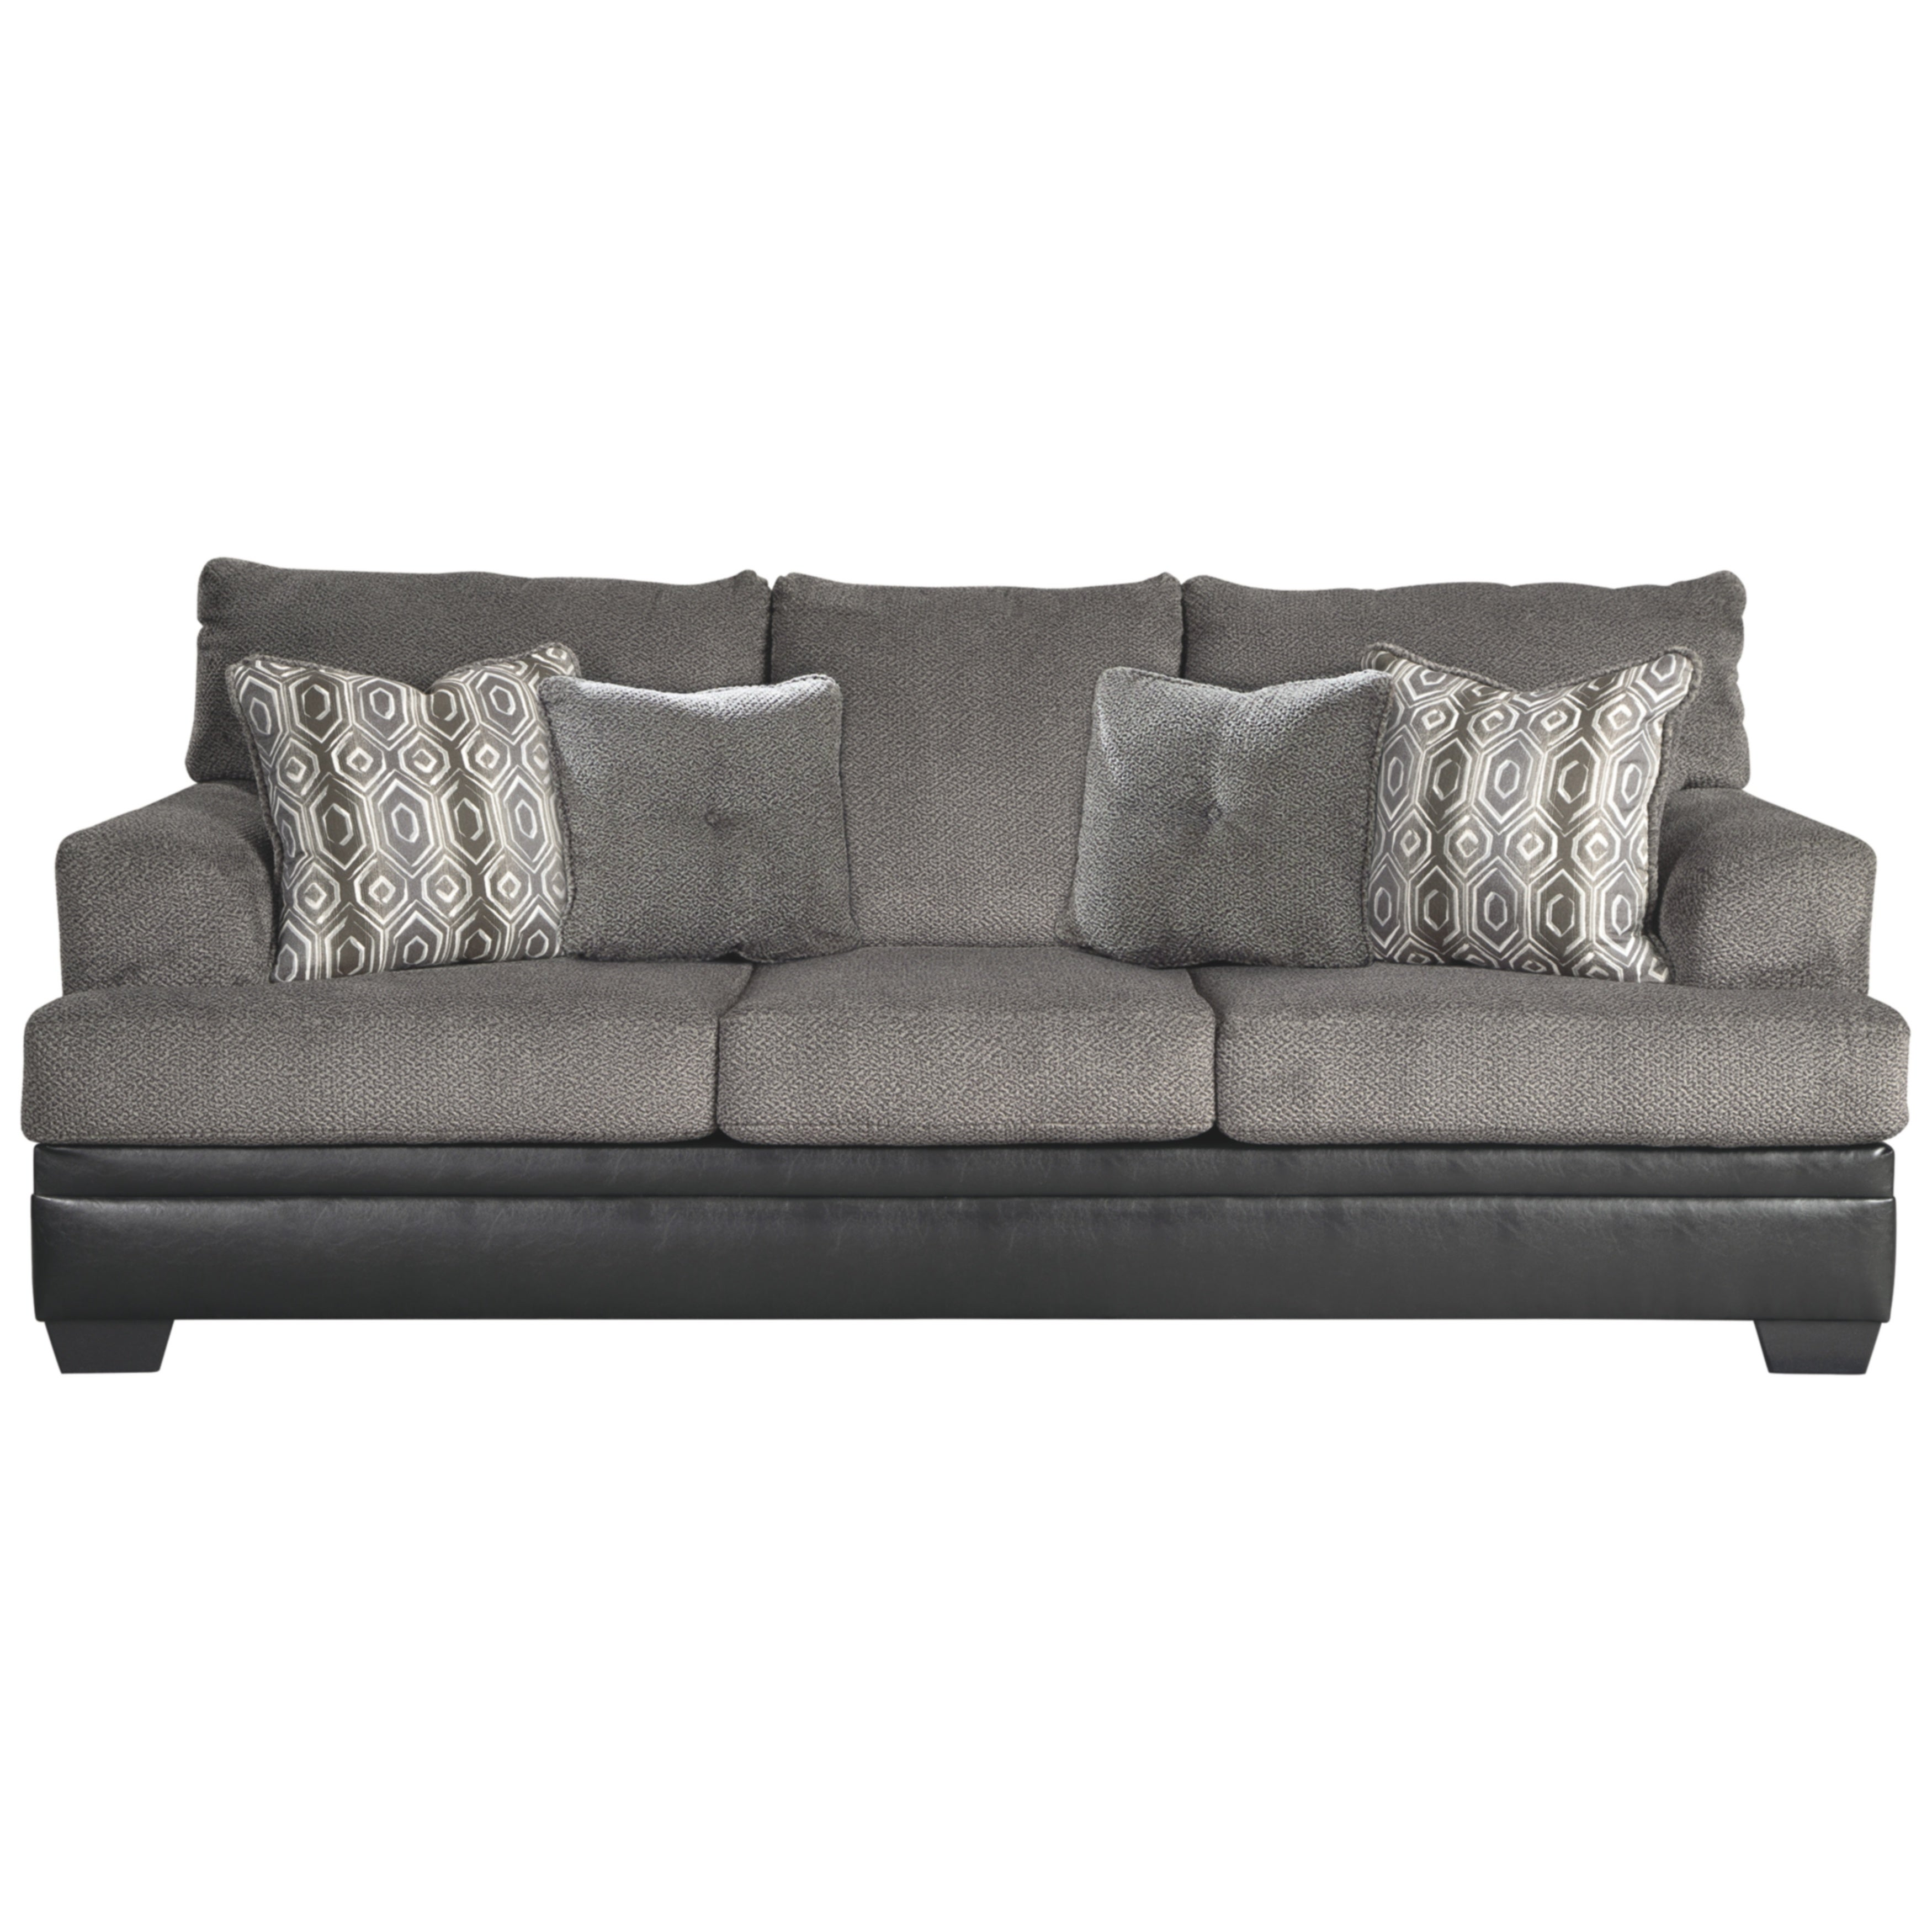 Shop Millingar Queen Black Faux Leather and Smoke Grey Fabric Sofa ...